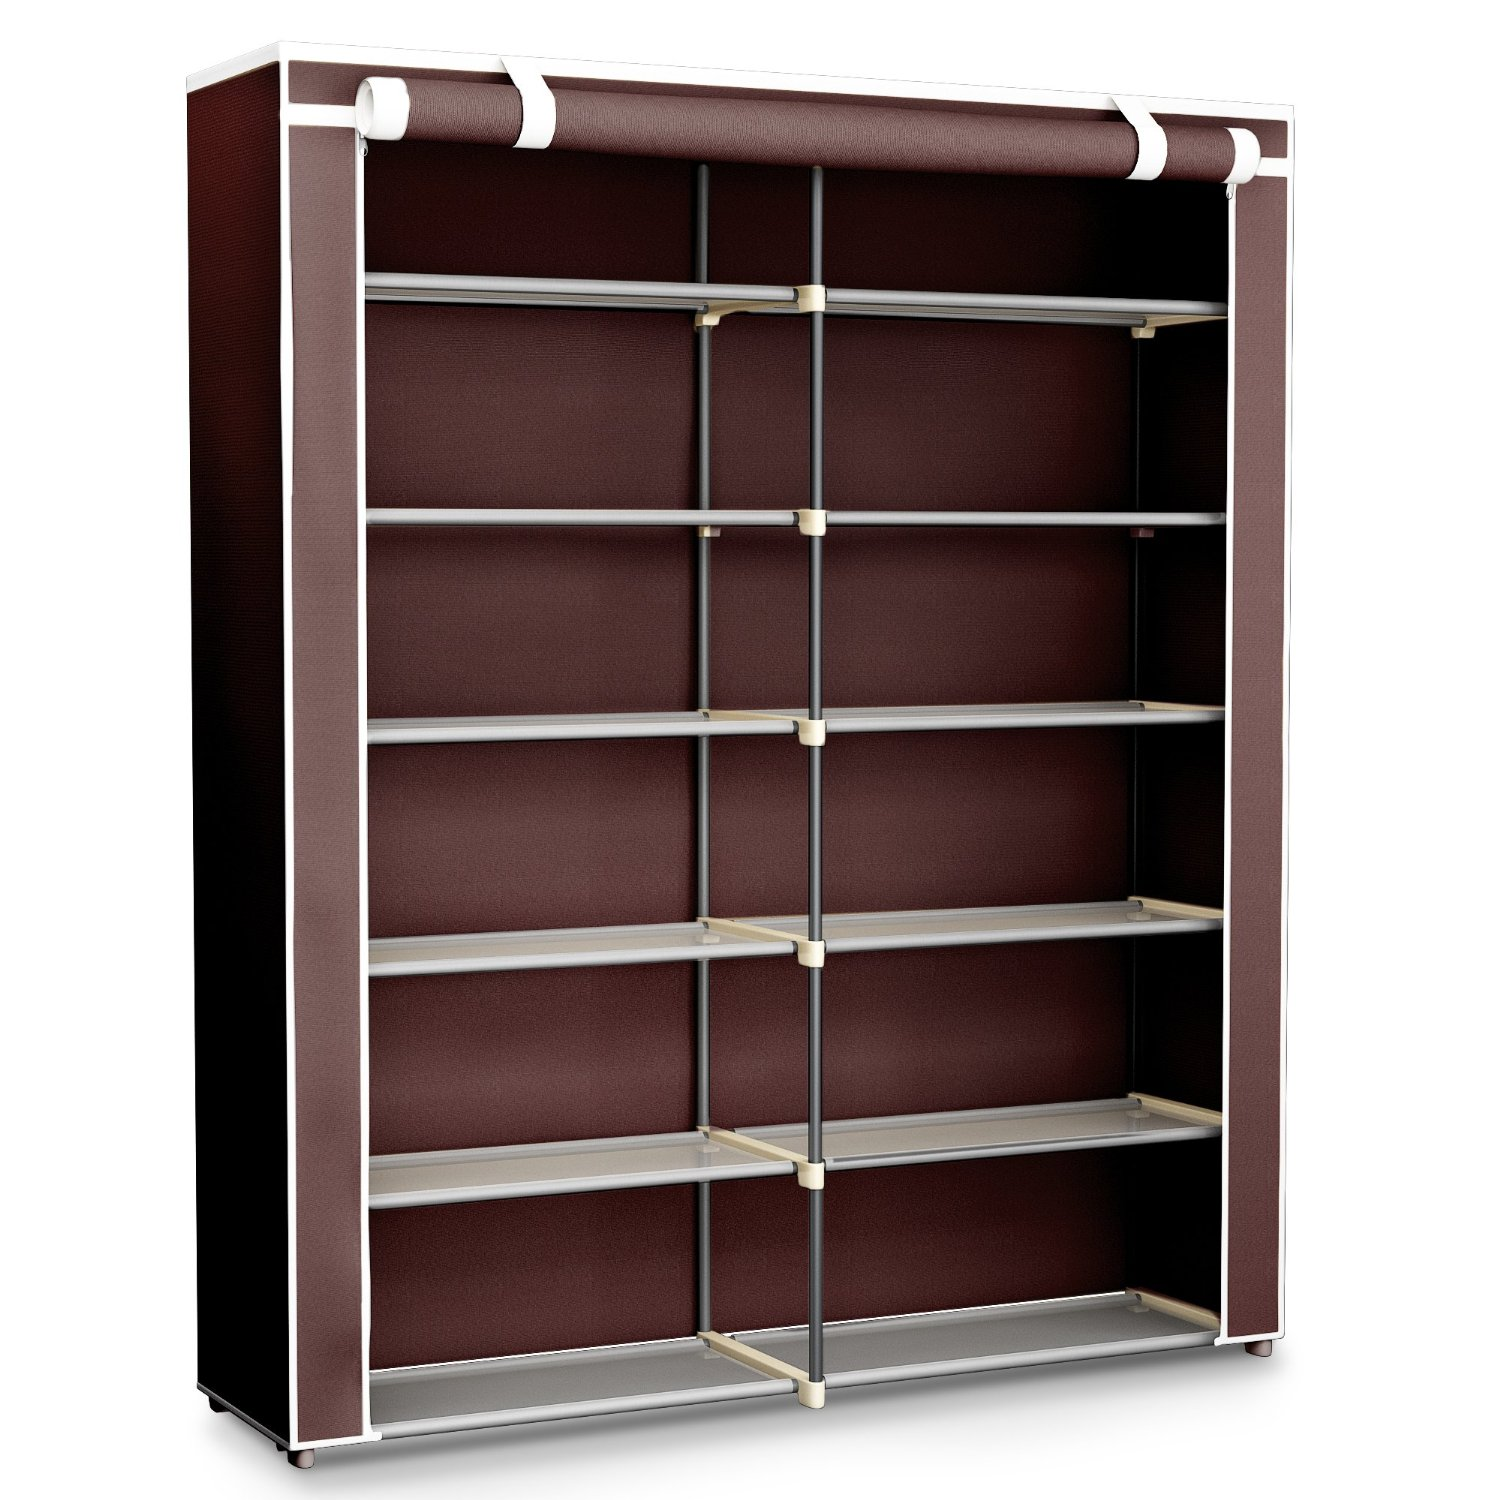 Get Quotations · 36 Pairs Shoe Rack Organizer Storage Bench   Organize Your Closet  Cabinet Or Entryway   Easy